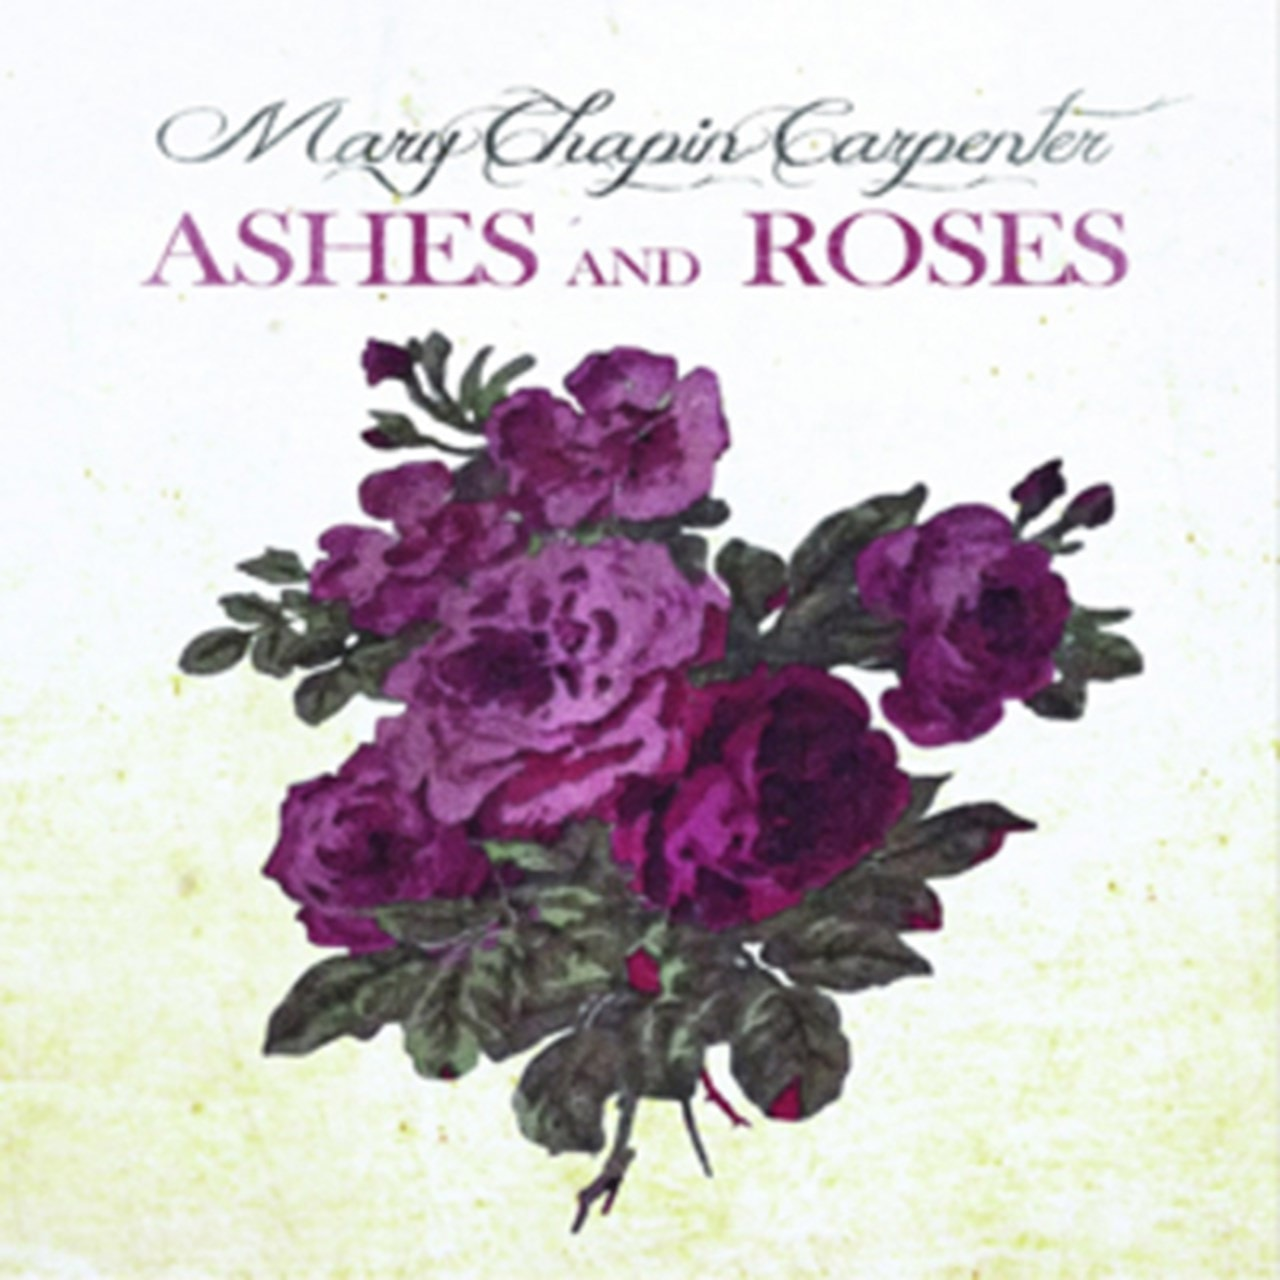 Ashes and Roses - 1